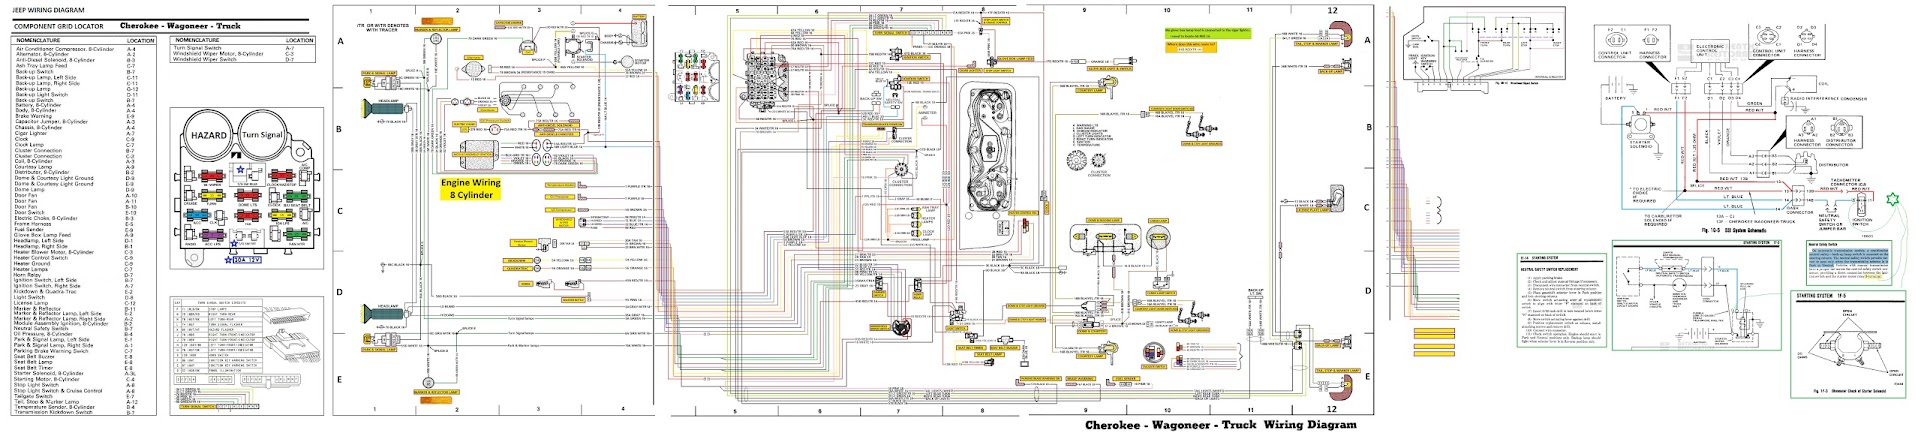 1979 jeep j10 wiring schematics - wiring diagram fund-teta -  fund-teta.disnar.it  disnar.it